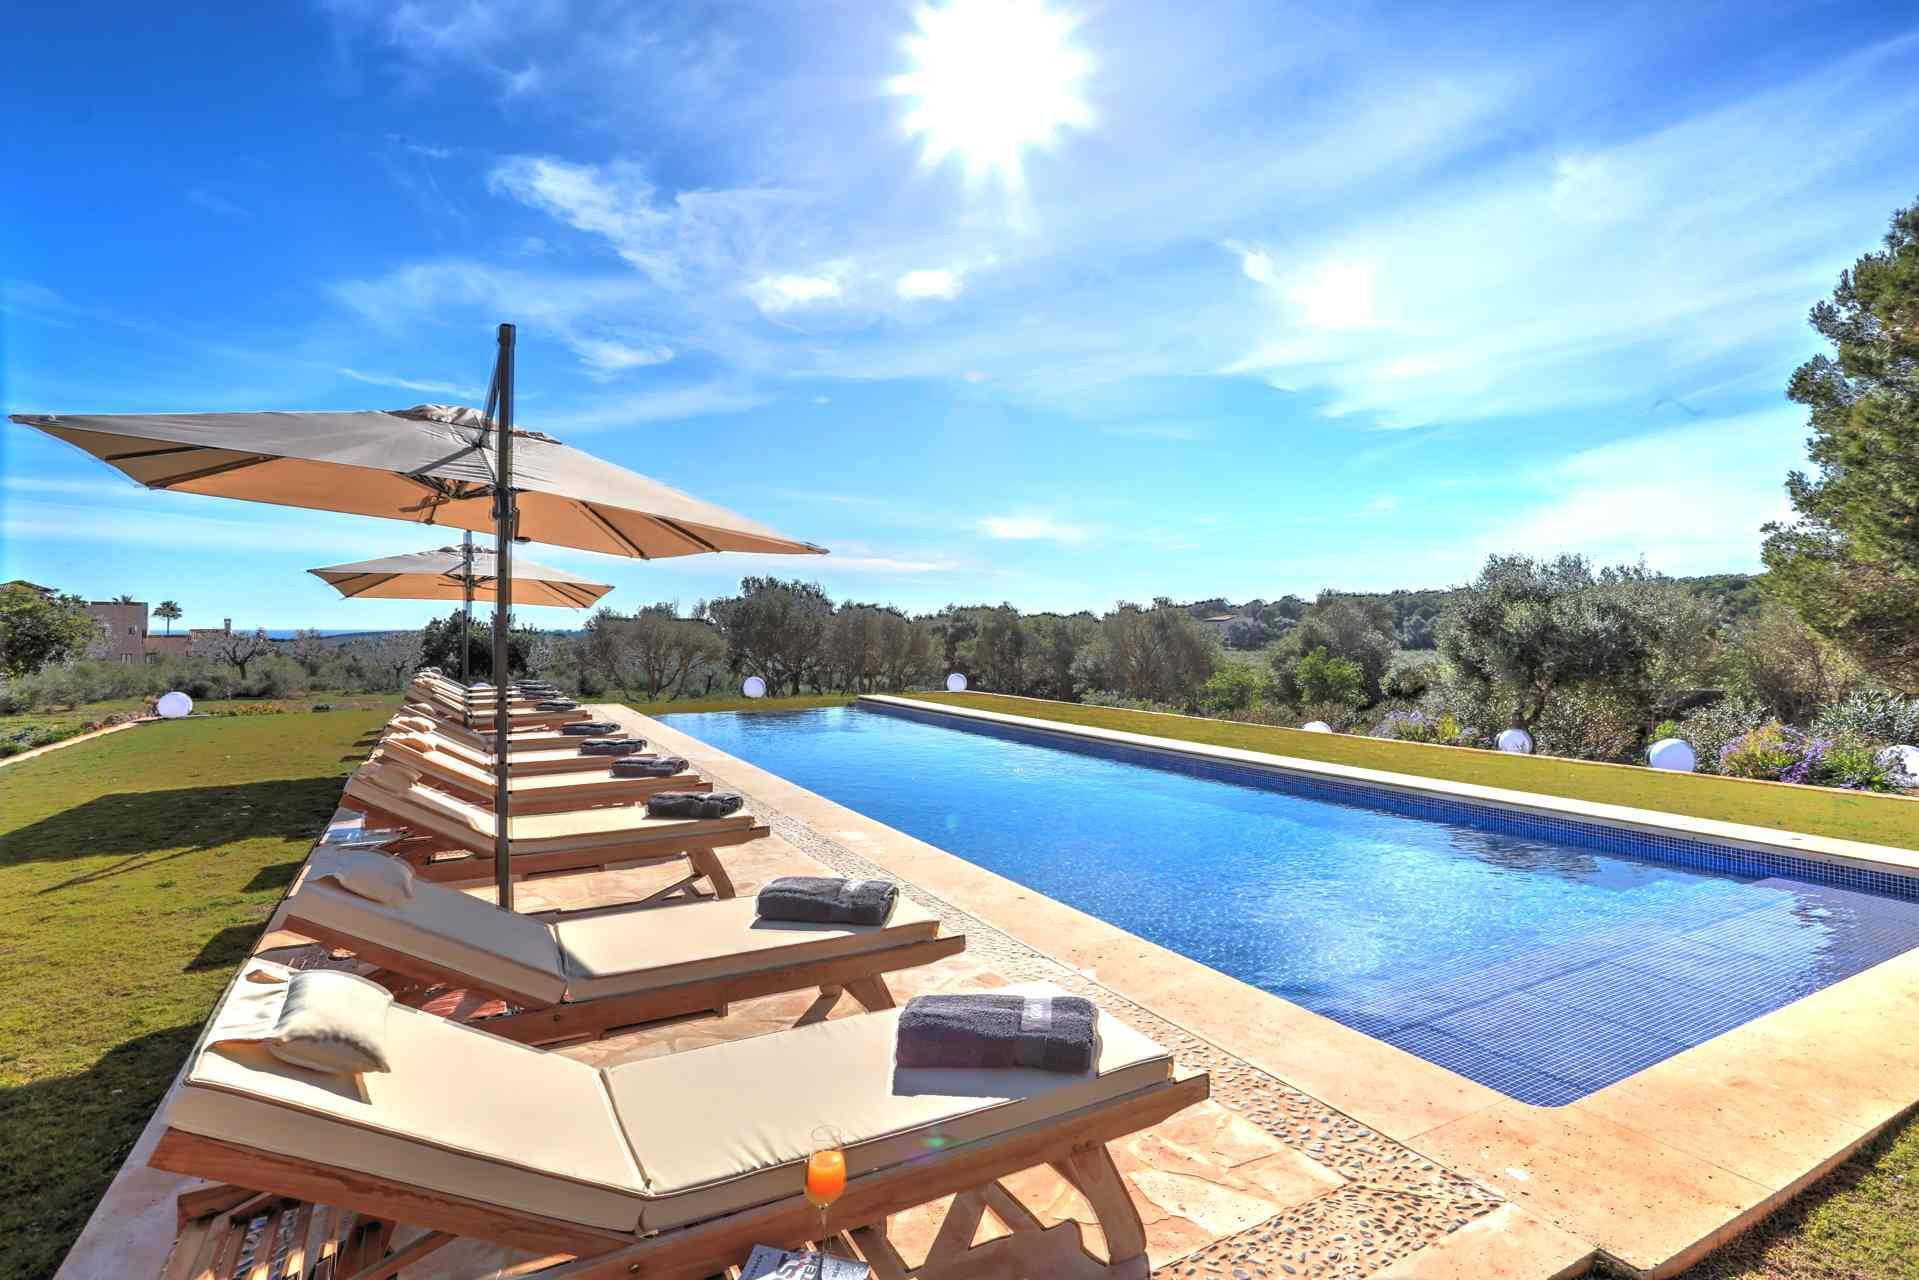 01-315 brand new luxury Finca east Mallorca Bild 5